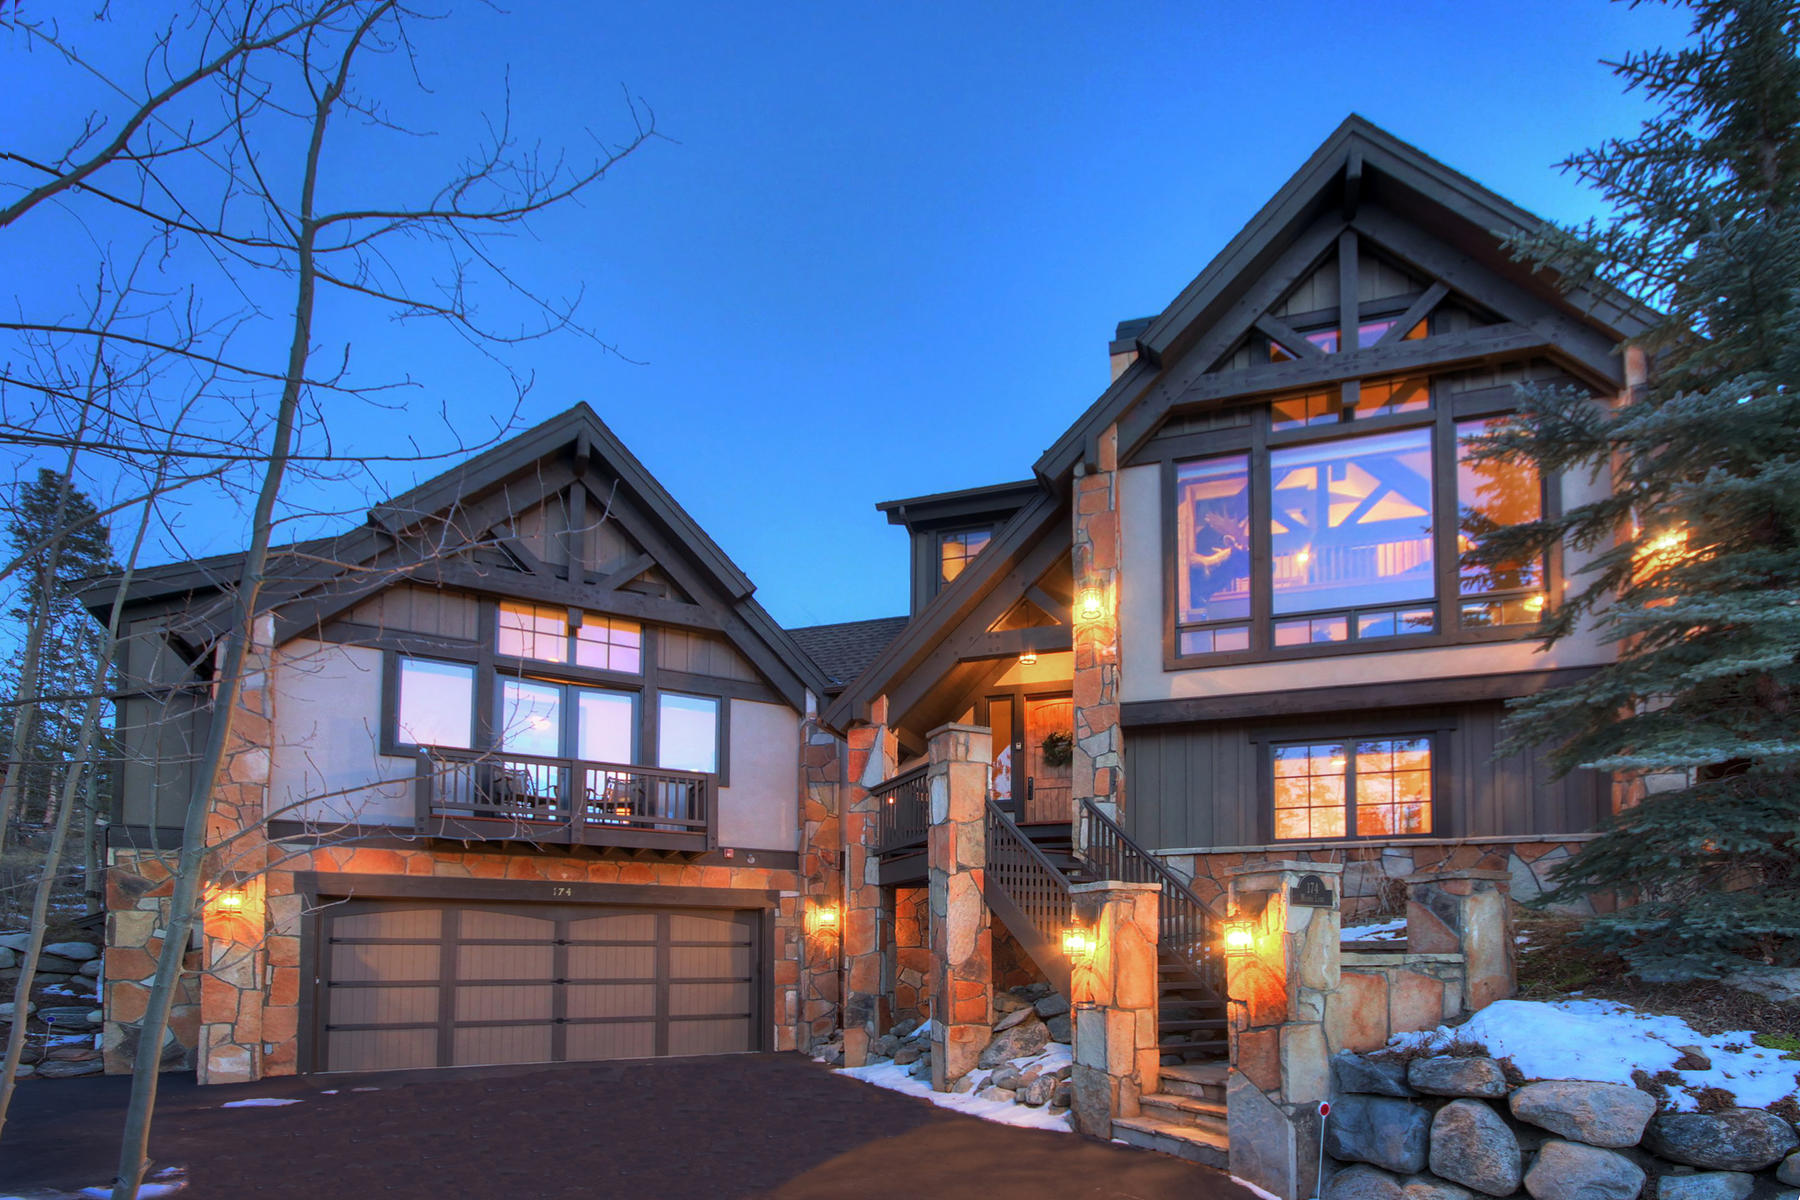 Single Family Home for Active at Elegant Mountain Retreat Minutes to Breckenridge 174 Marks Lane Breckenridge, Colorado 80424 United States